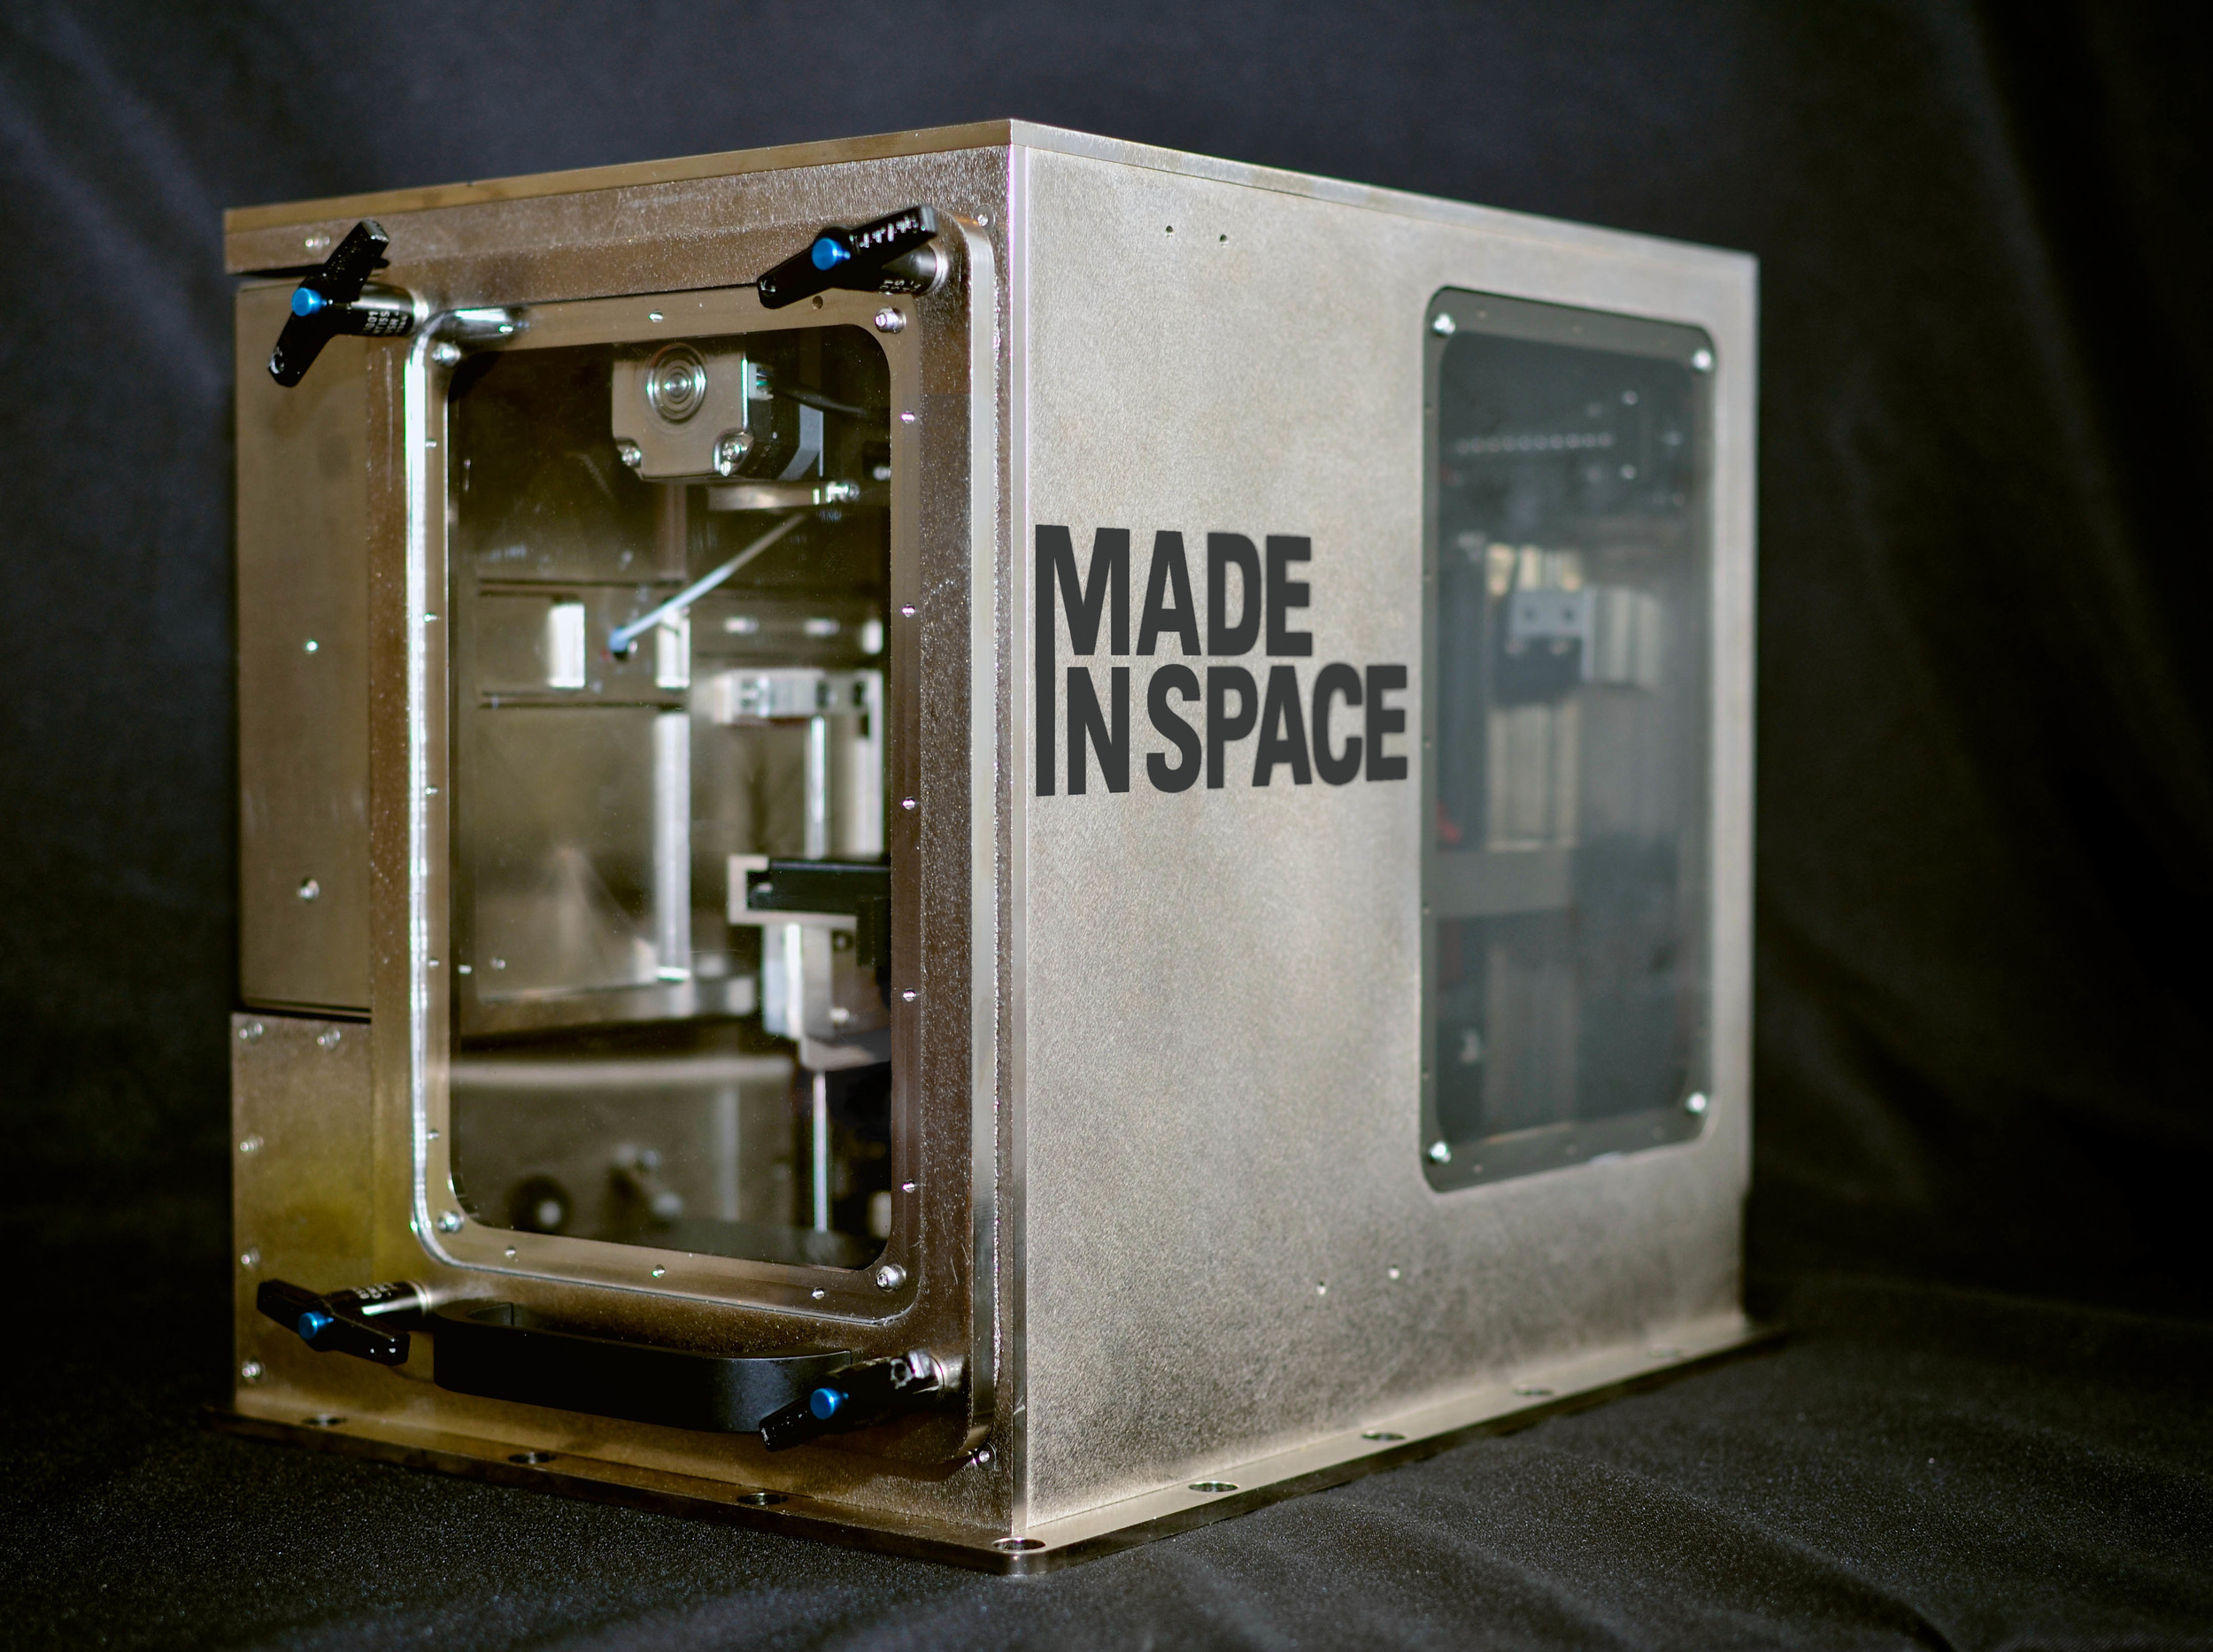 The Made in Space 3D printer will create objects out of thermoplastics on the International Space Station in 2014.   Source: Made in Space